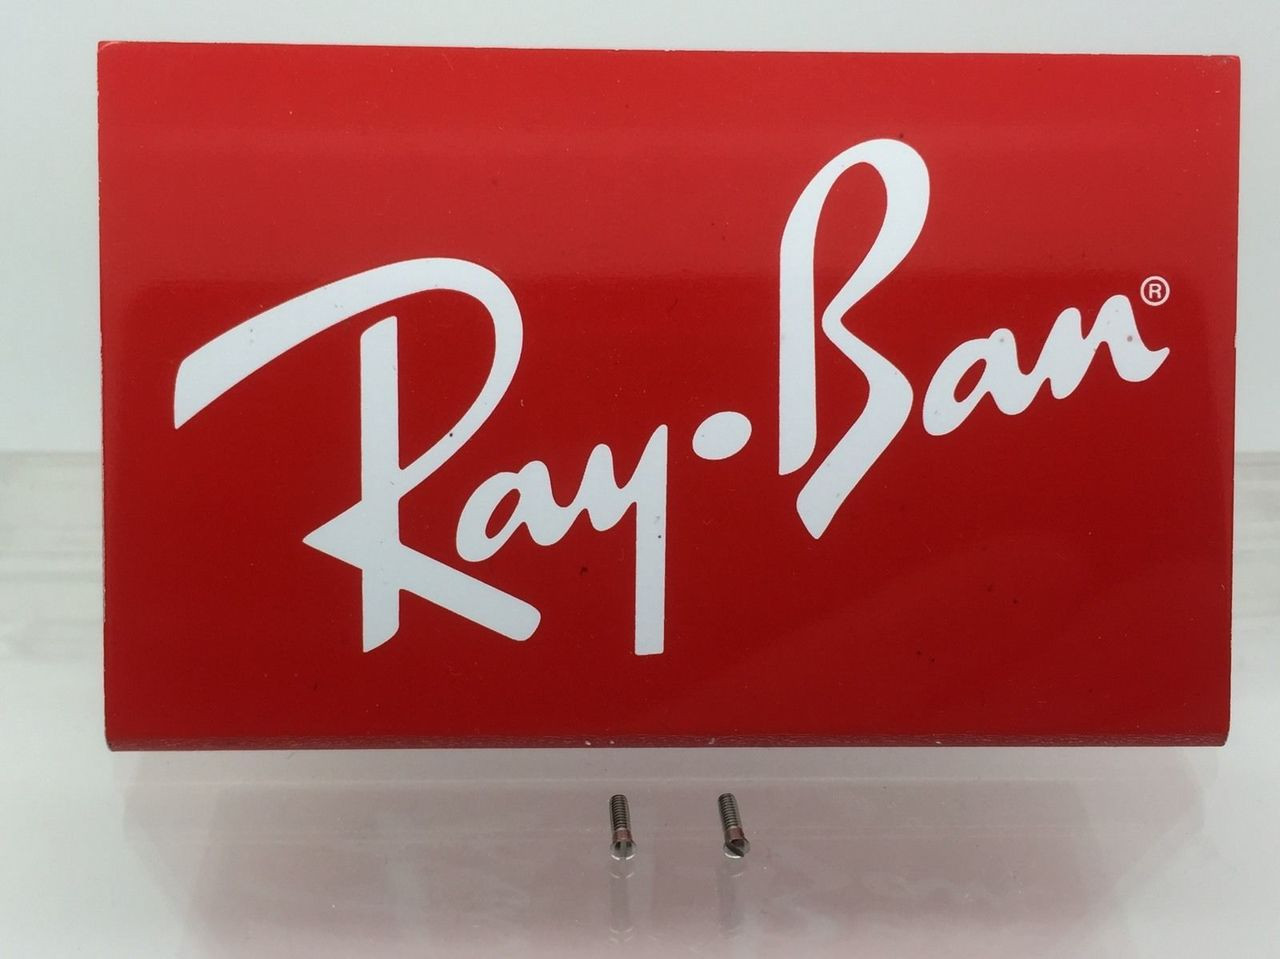 80bc3b4459 ... AUTHENTIC REPLACEMENT RAY-BAN RB 4147 TEMPLE HINGE SCREWS PAIR NEW  GENUINE. Image 1. Loading zoom